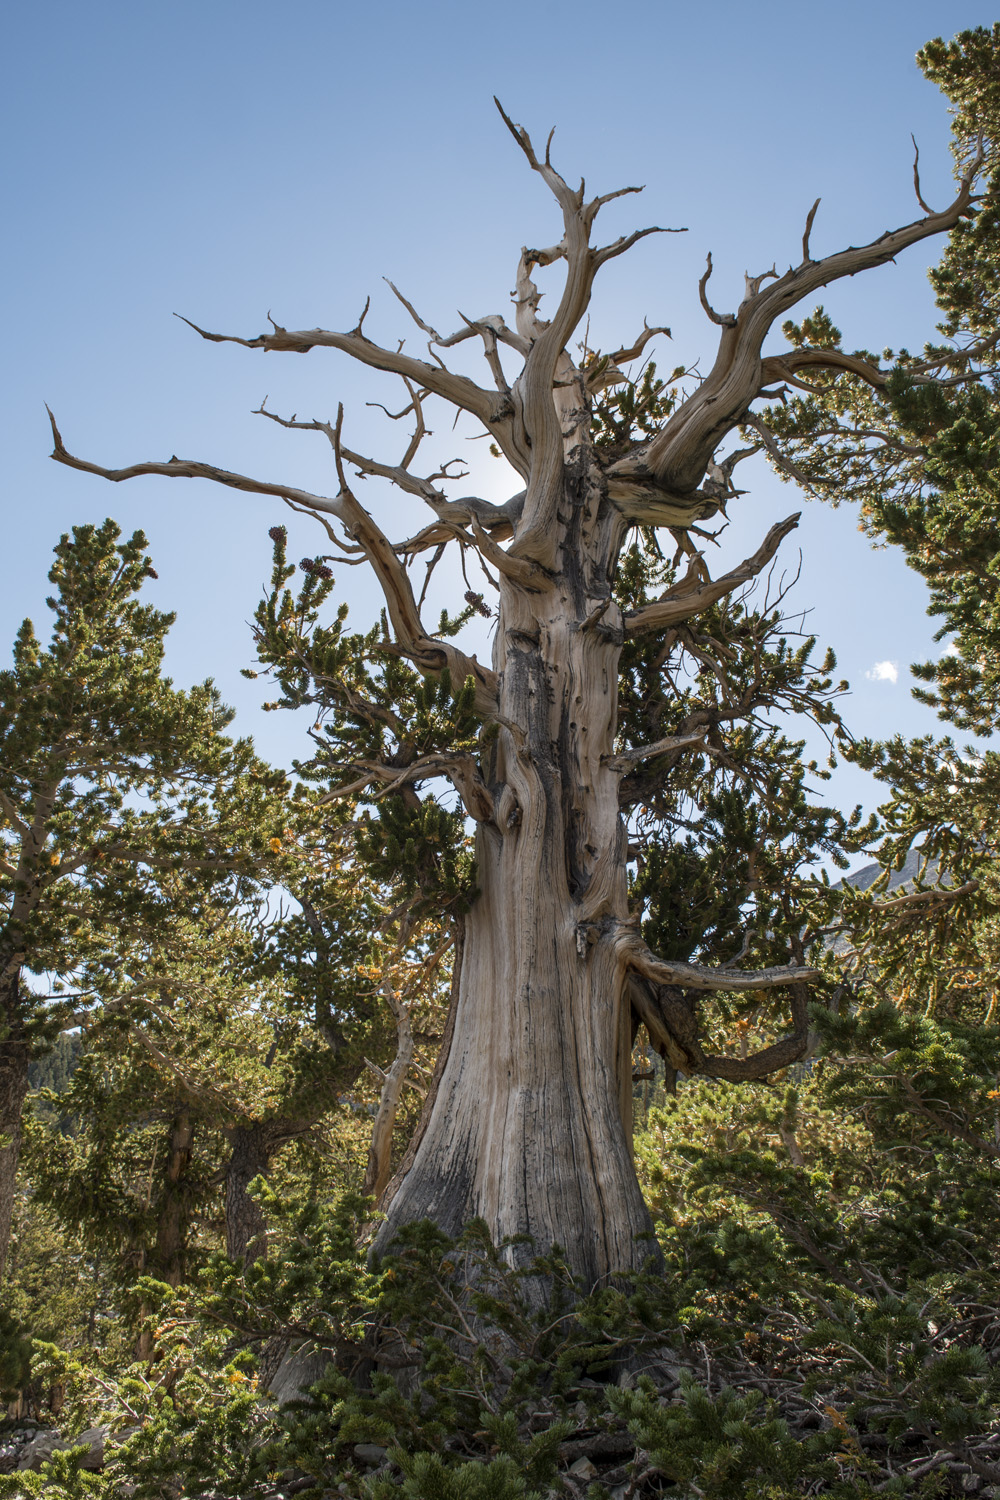 One of the ancient bristlecone pines.